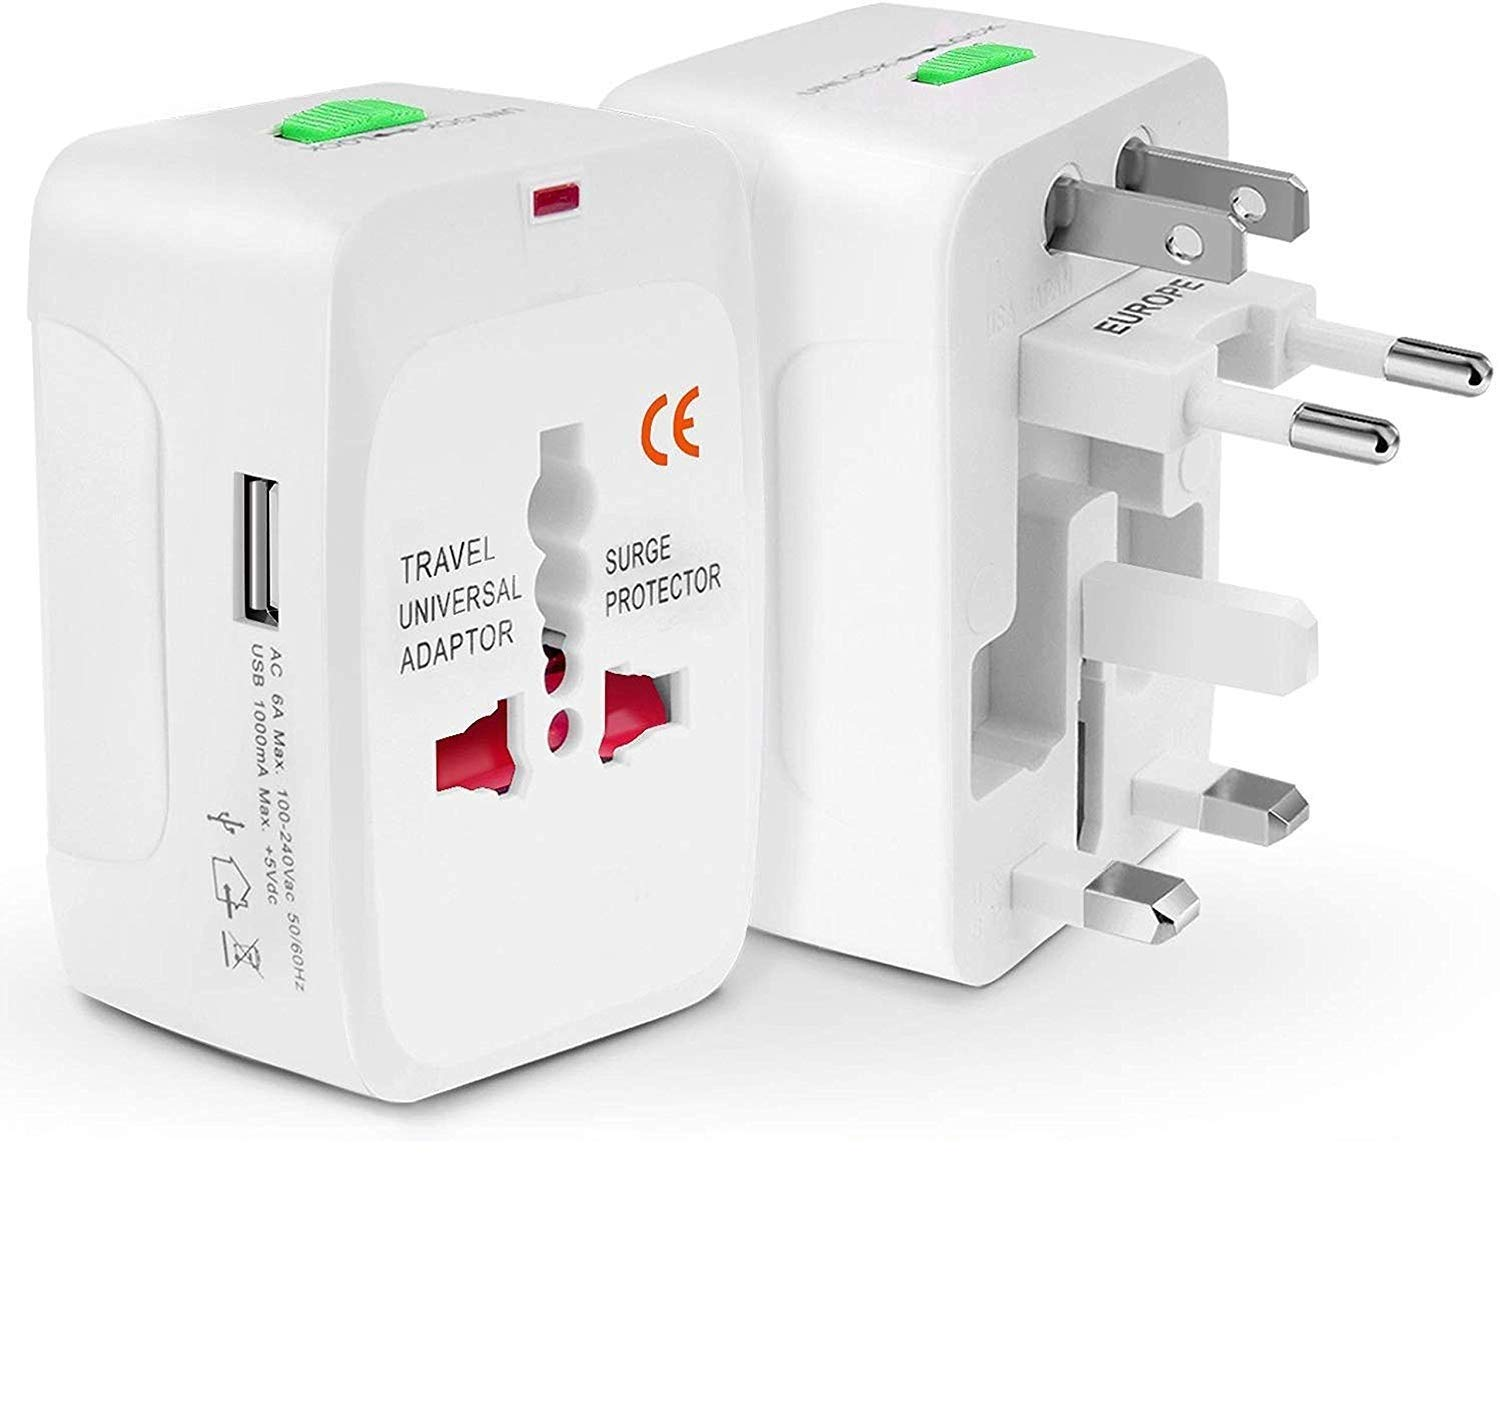 LOHAYA Worldwide Universal Travel Adapter with All in One Universal Wall AC  Power Plug with Dual USB Charging Ports with Protected Electrical Plug for  Cell Phone Laptop Camera Speakers Tablets : Amazon.in: